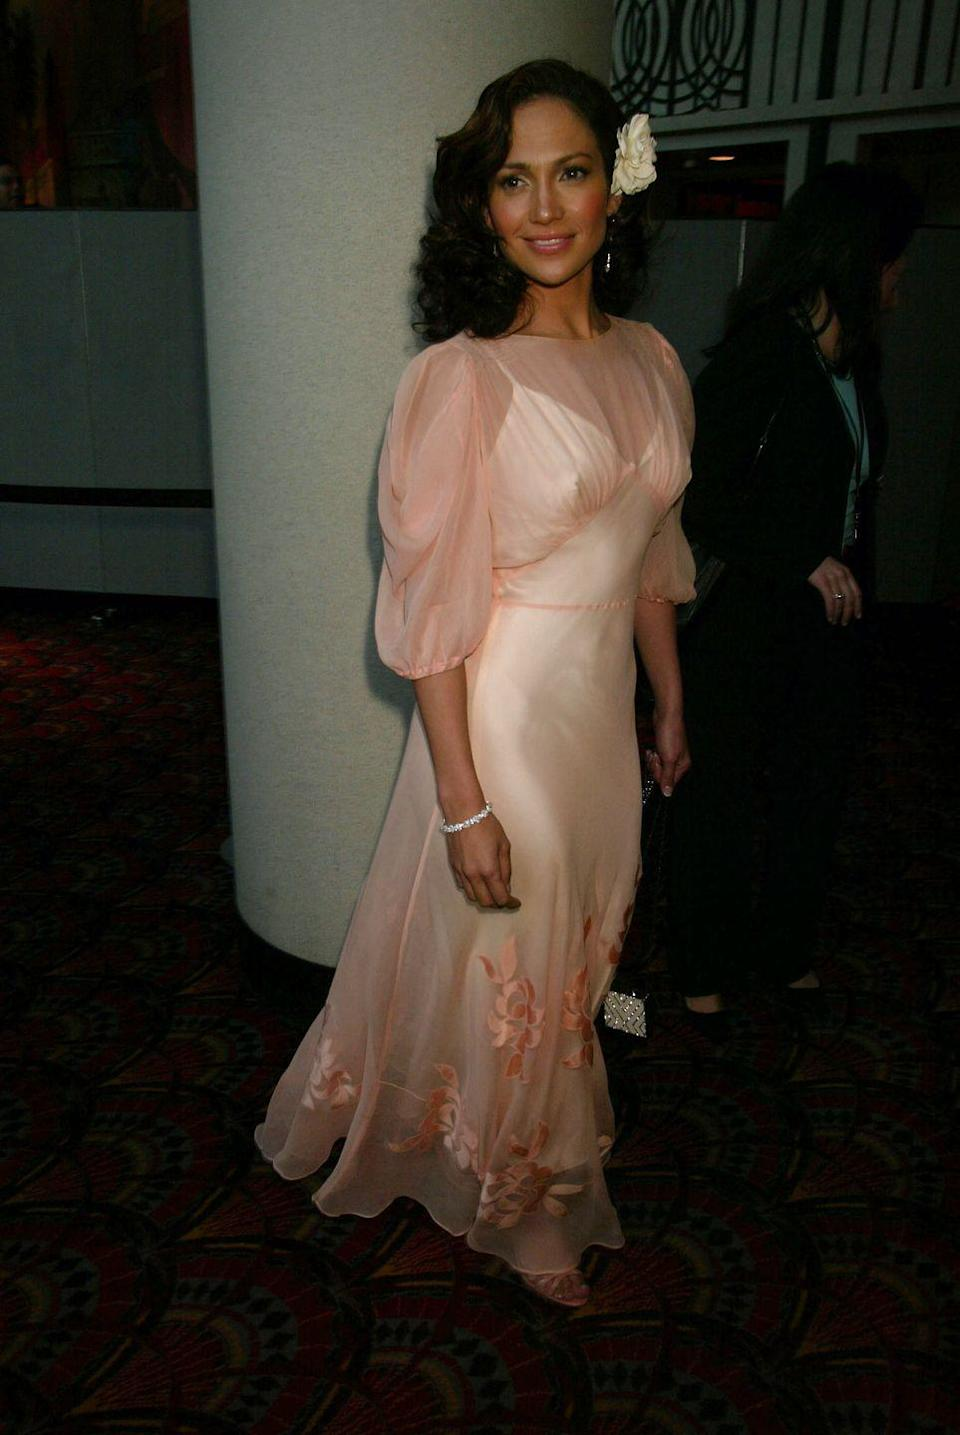 <p>J-Lo went for a pink sheer dress with a cream slip underneath for an NYC premiere. </p>